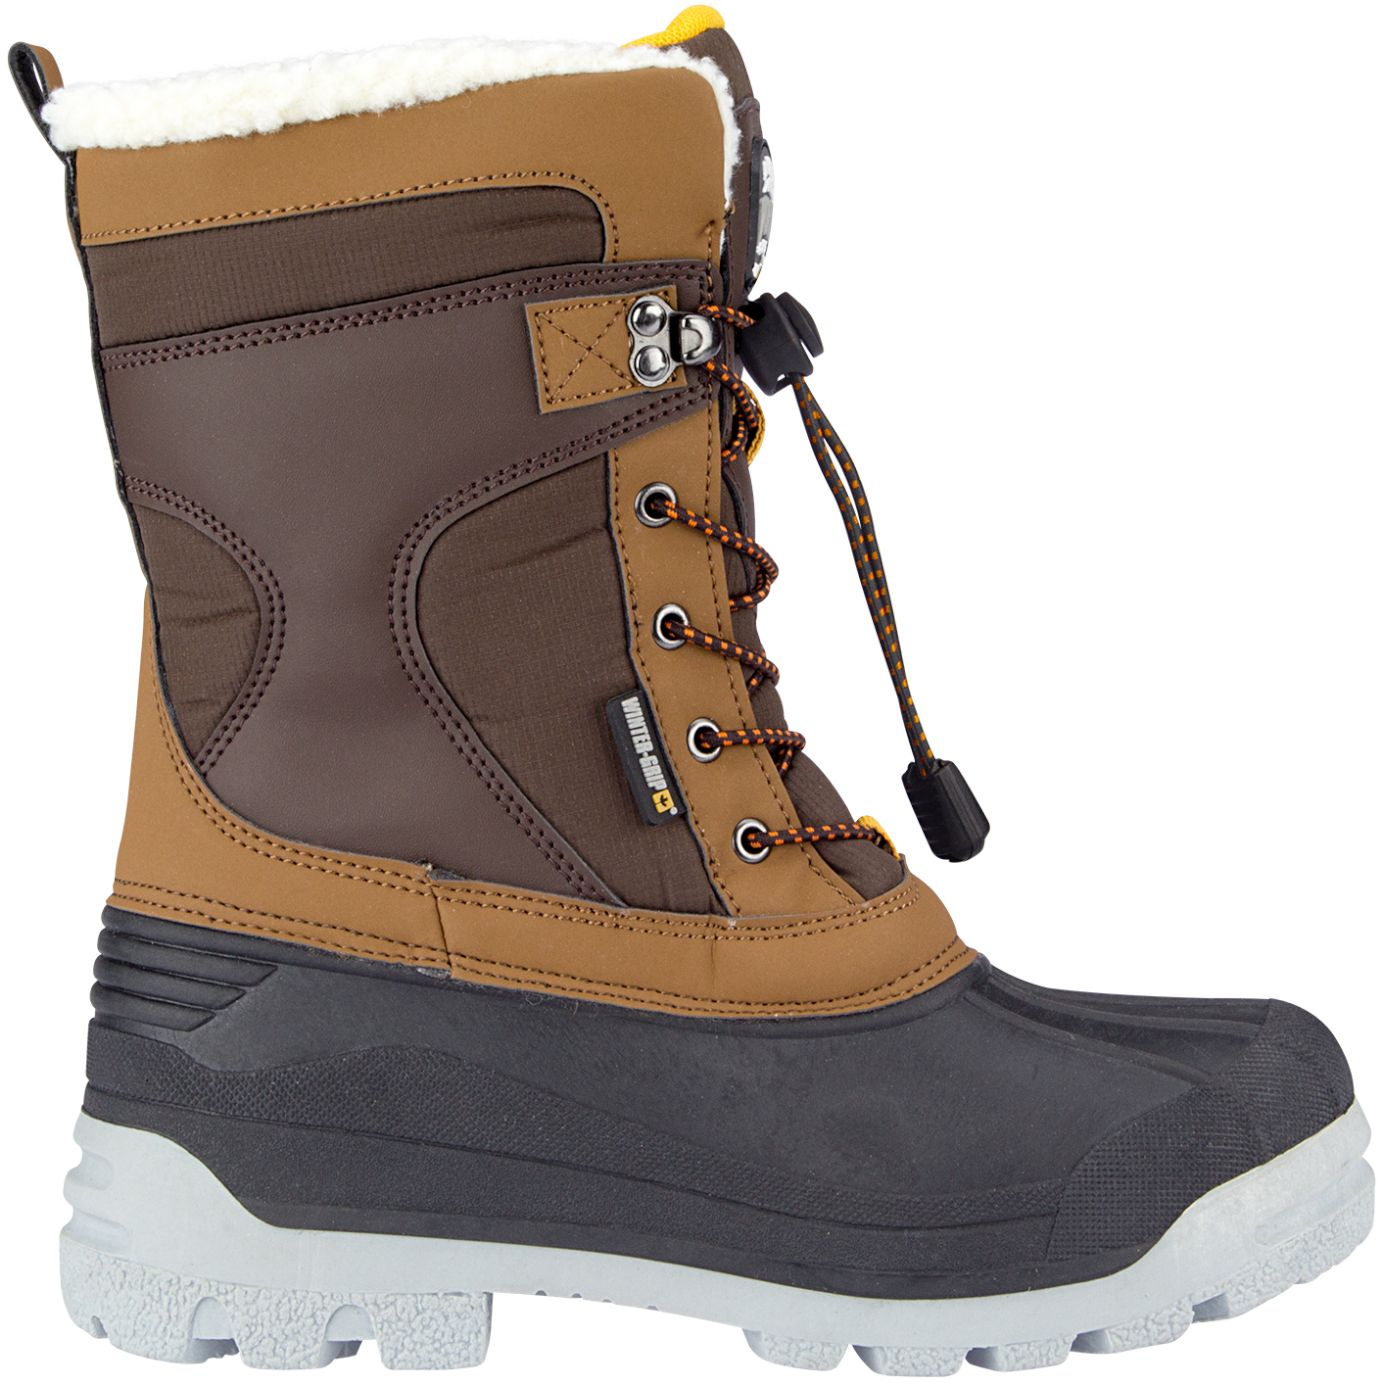 cheap for discount 34cb8 3f84e Herren-Stiefel & Boots - Online Shop & Outlet 46 | O46